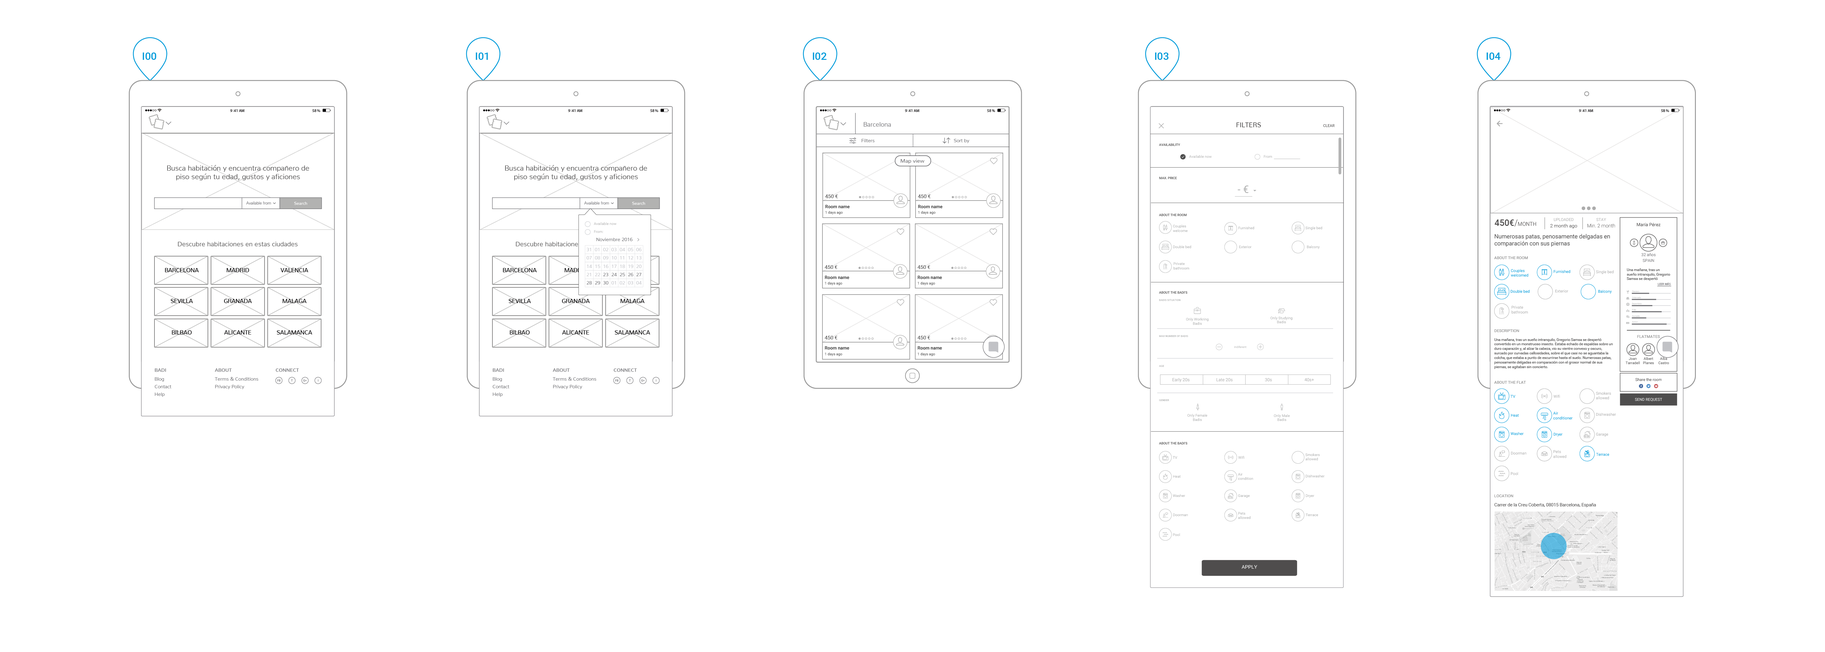 Wireframes of the iPad version of the website